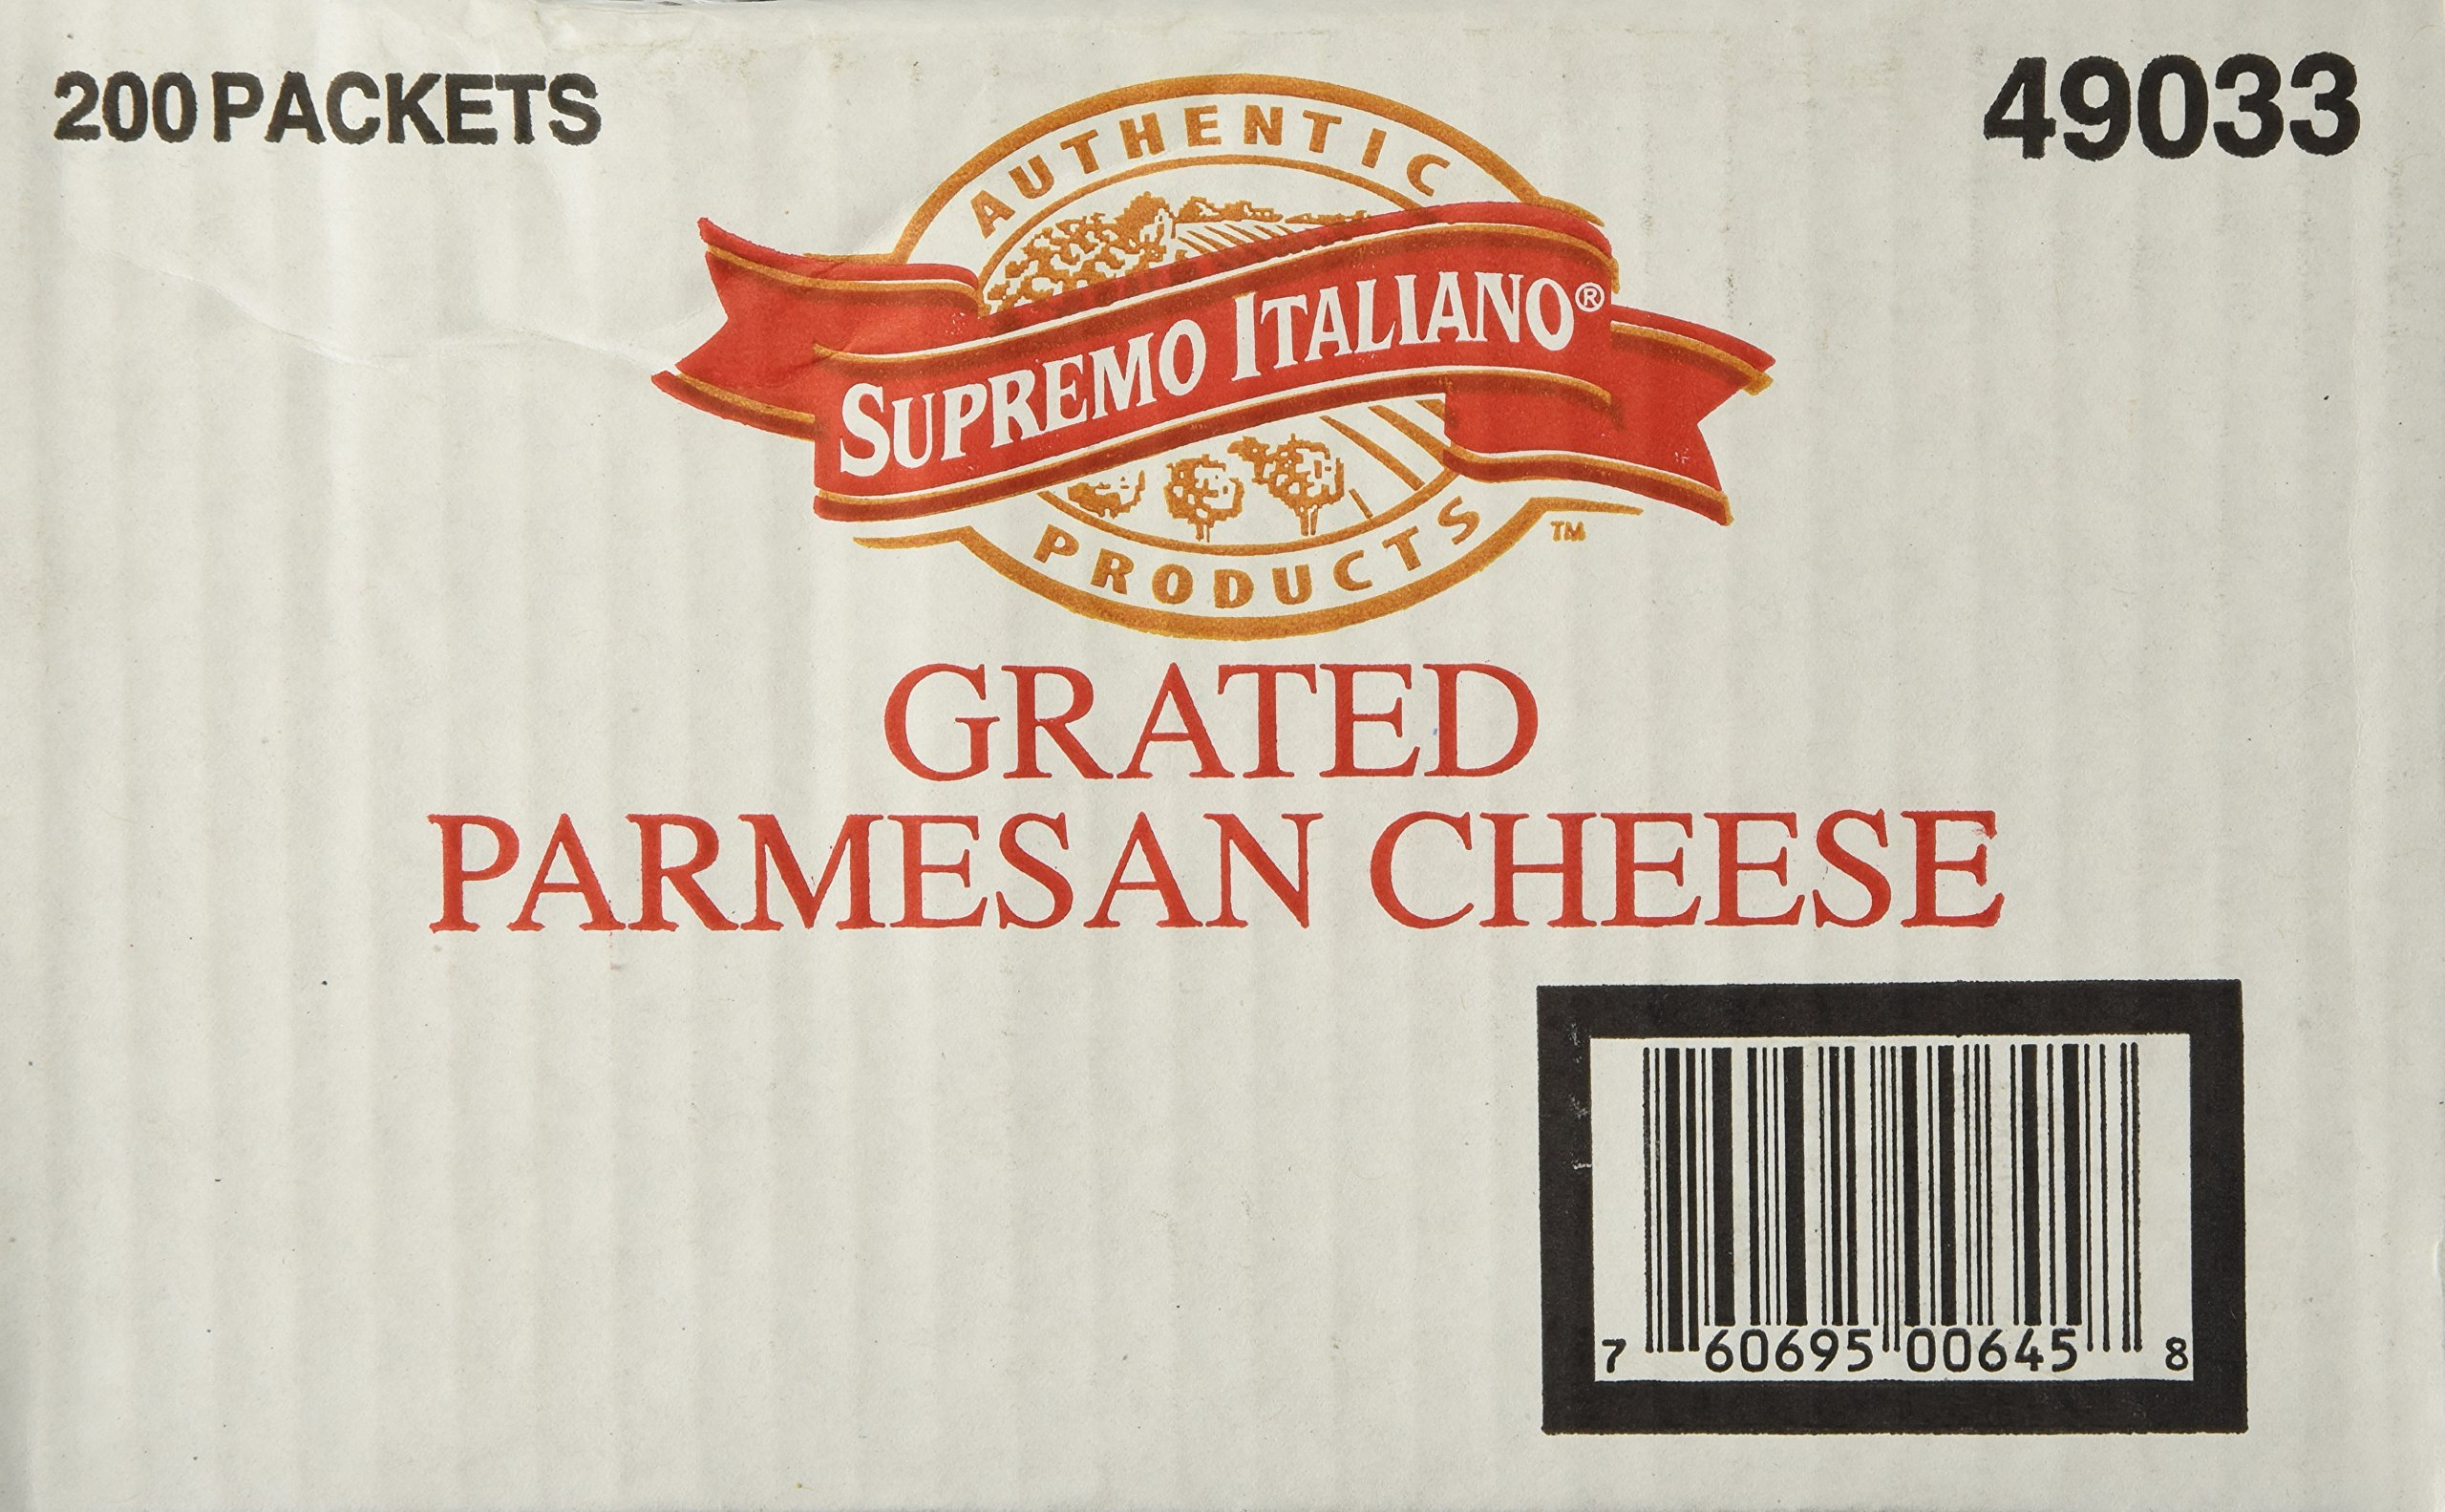 Supremo Italiano Natural Grated Parmesan Cheese, Restaurant Quality, No Refrigeration Needed, Sealed and Great for Pizza, 200 Packets